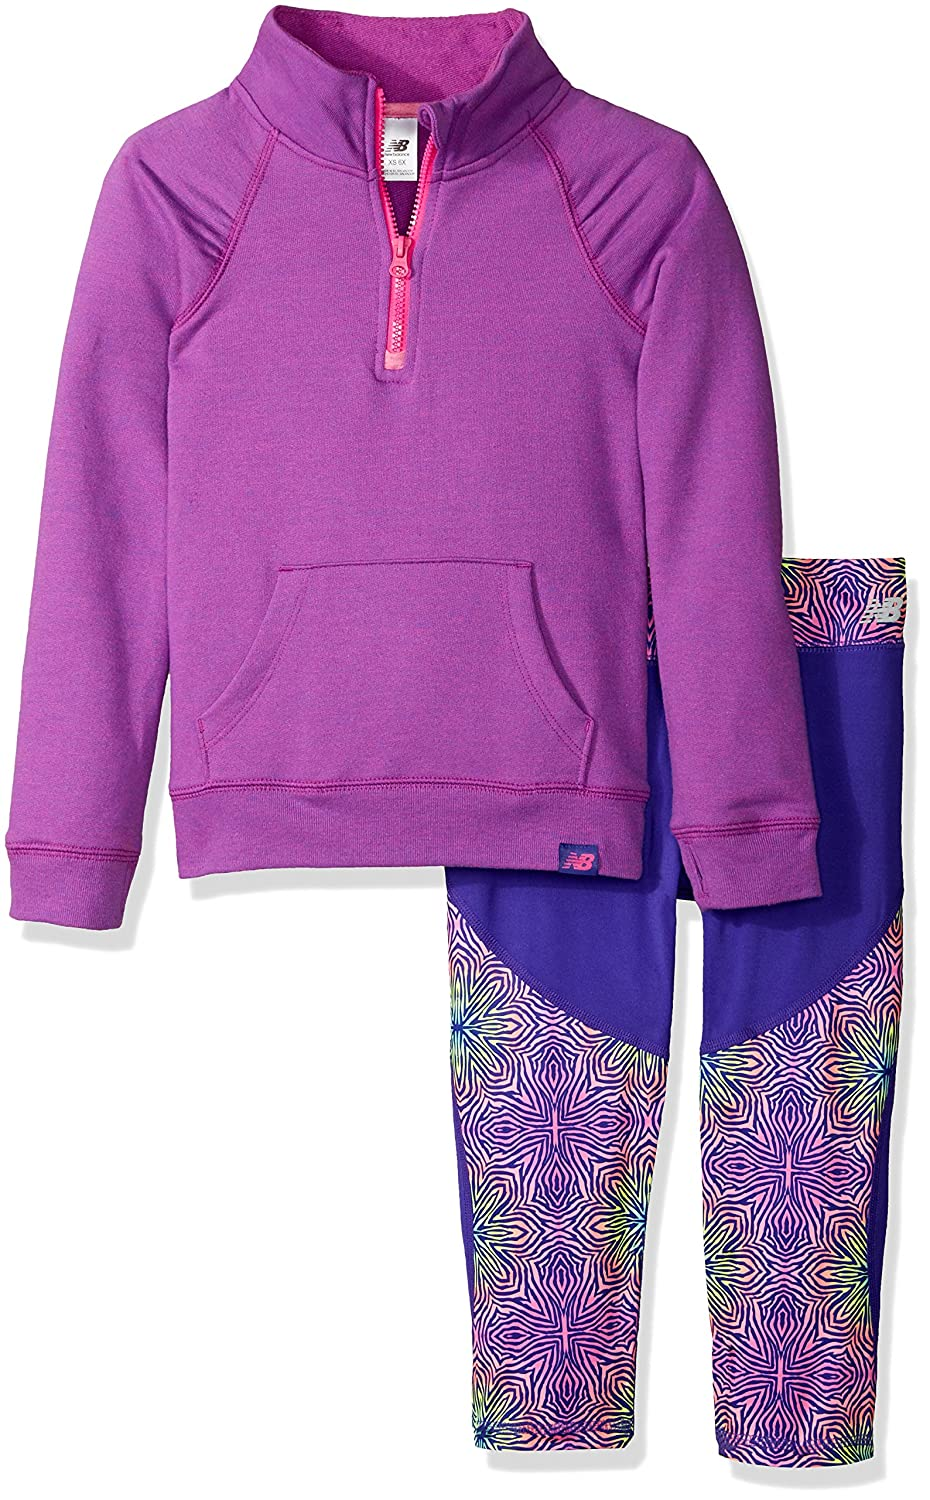 New Balance Girls' 1/4 Zip Pullover and Crop Sets 12354